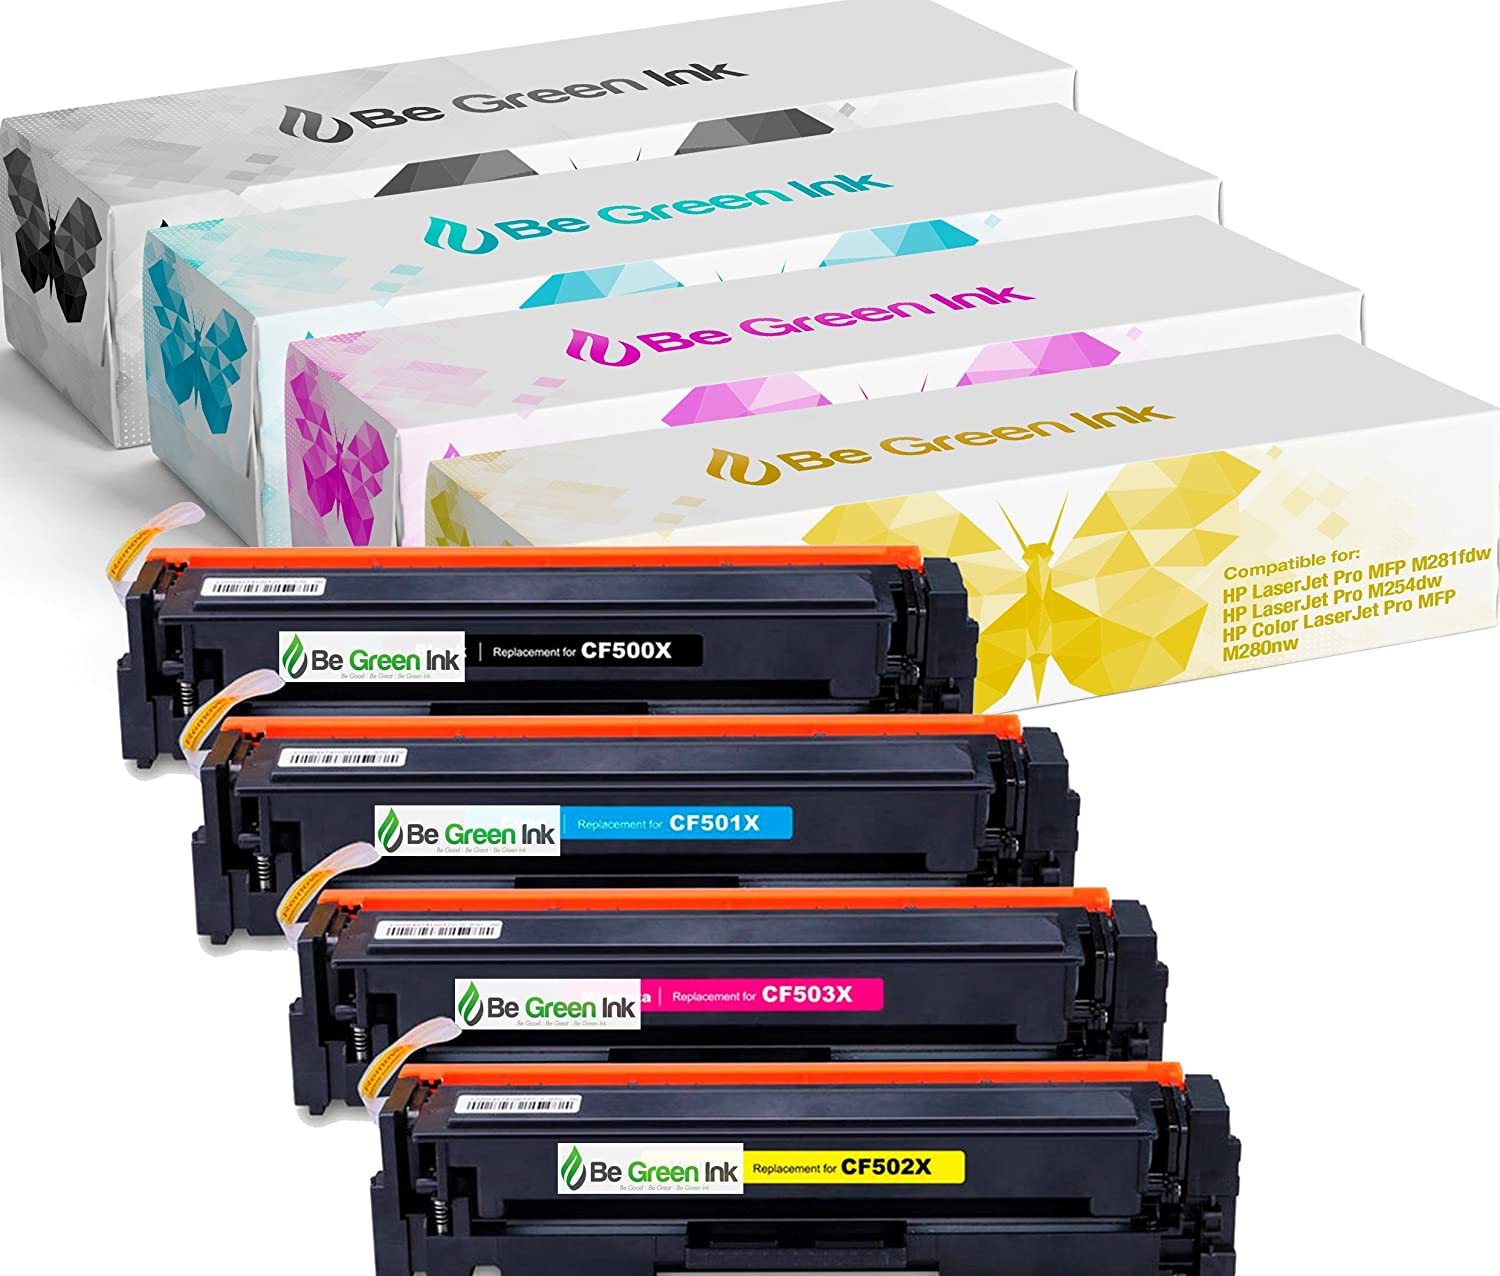 Be Green Ink Compatible Toner Cartridge Replacement for HP 202X 202A M281fdw M281cdw LaserJet Pro M254dw M254nw M280nw CF500X CF501X CF502X CF503X (4-pack, High Yield)